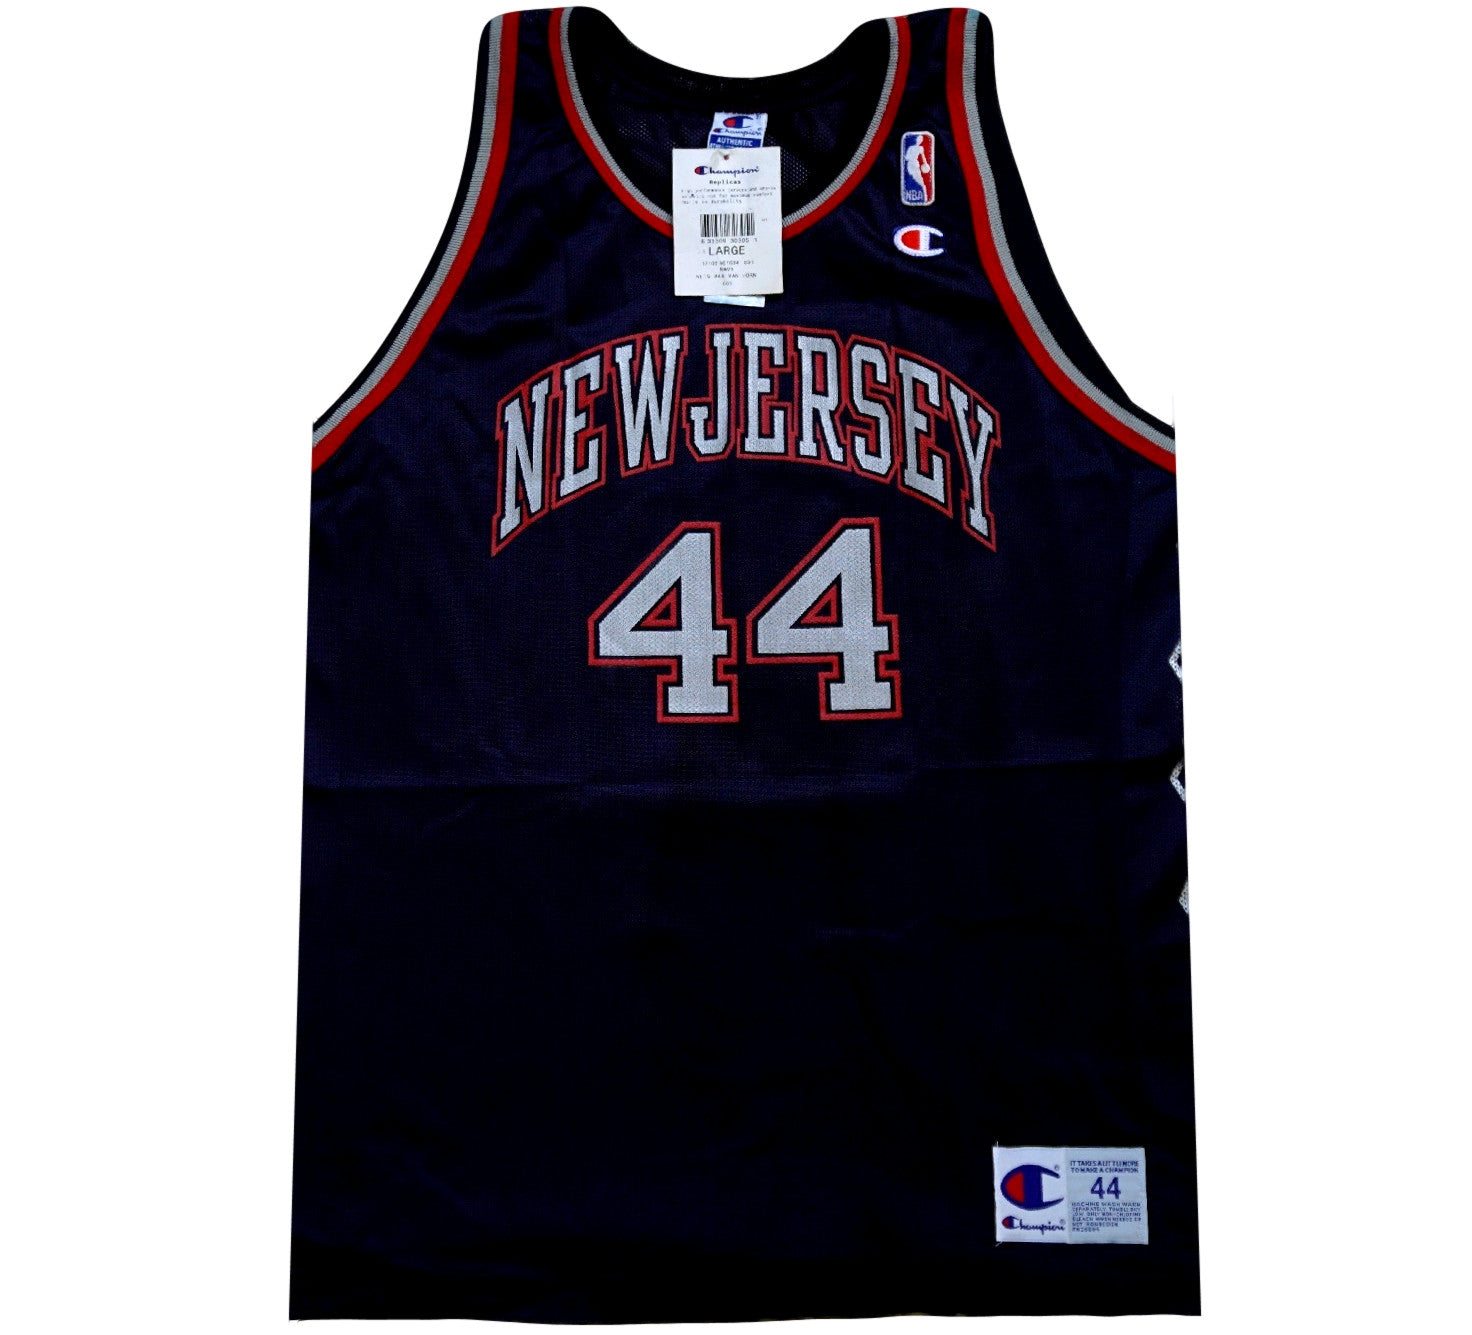 Keith Van Horn Nets Jersey - And Still